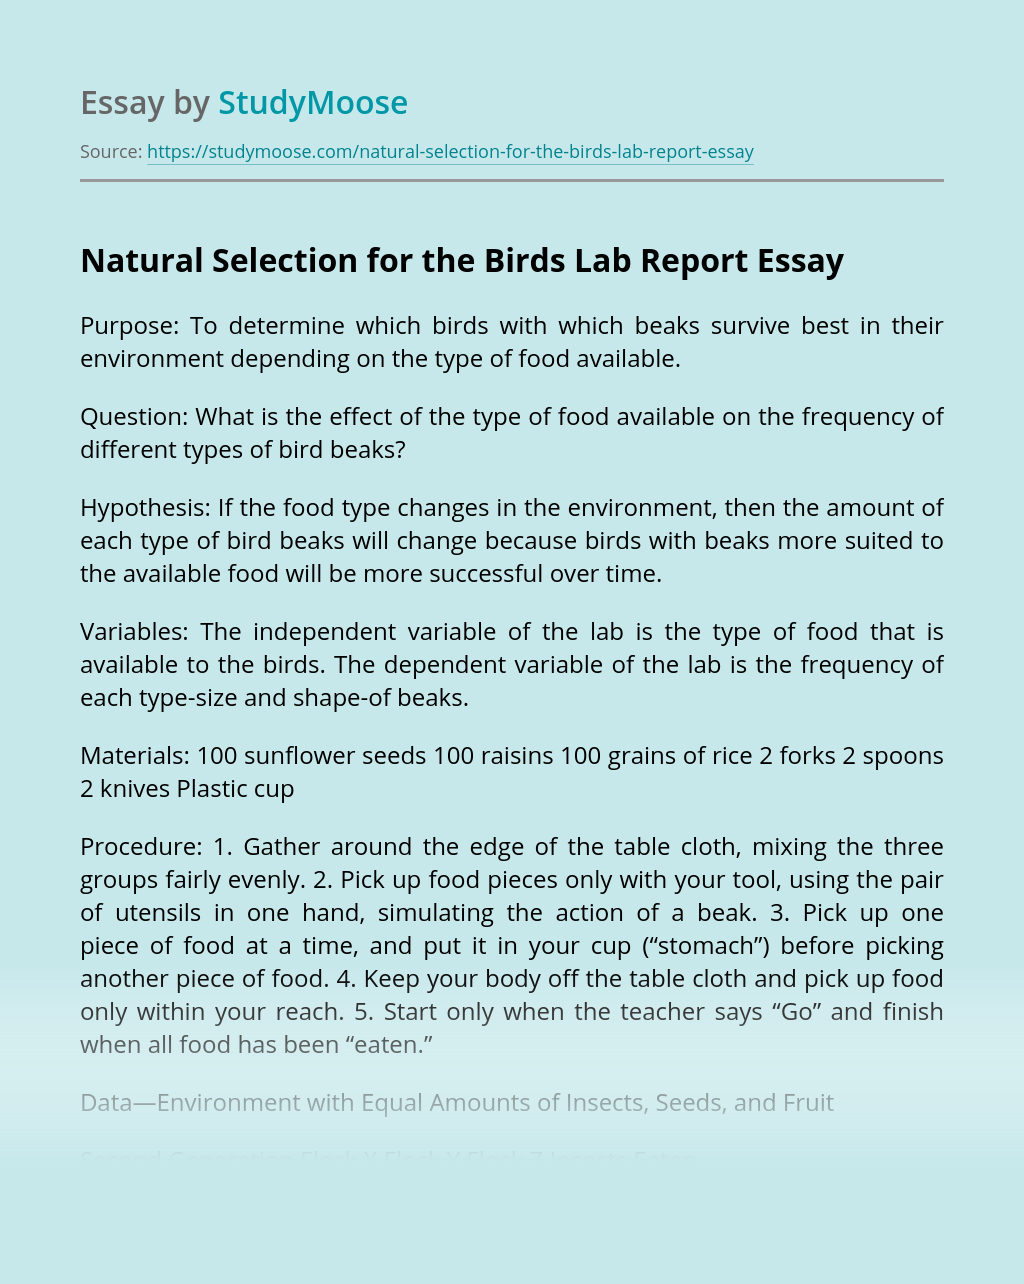 Natural Selection for the Birds Lab Report